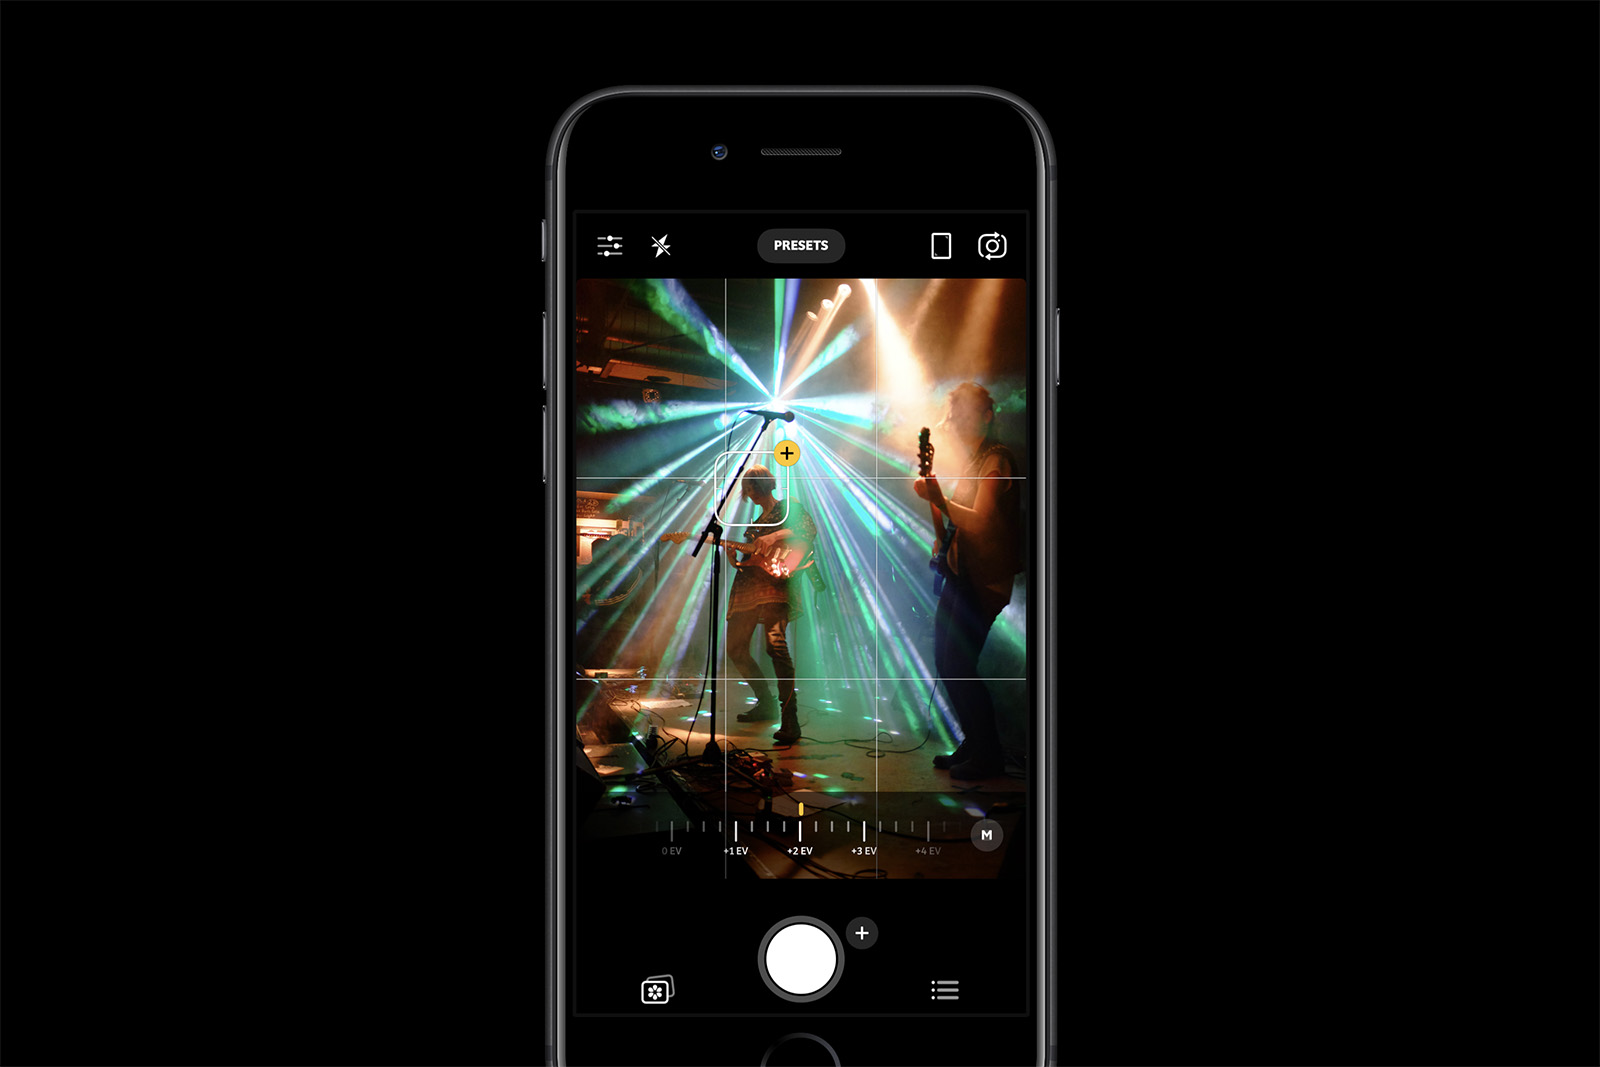 The Best Camera Apps For The Iphone To Shoot Edit And